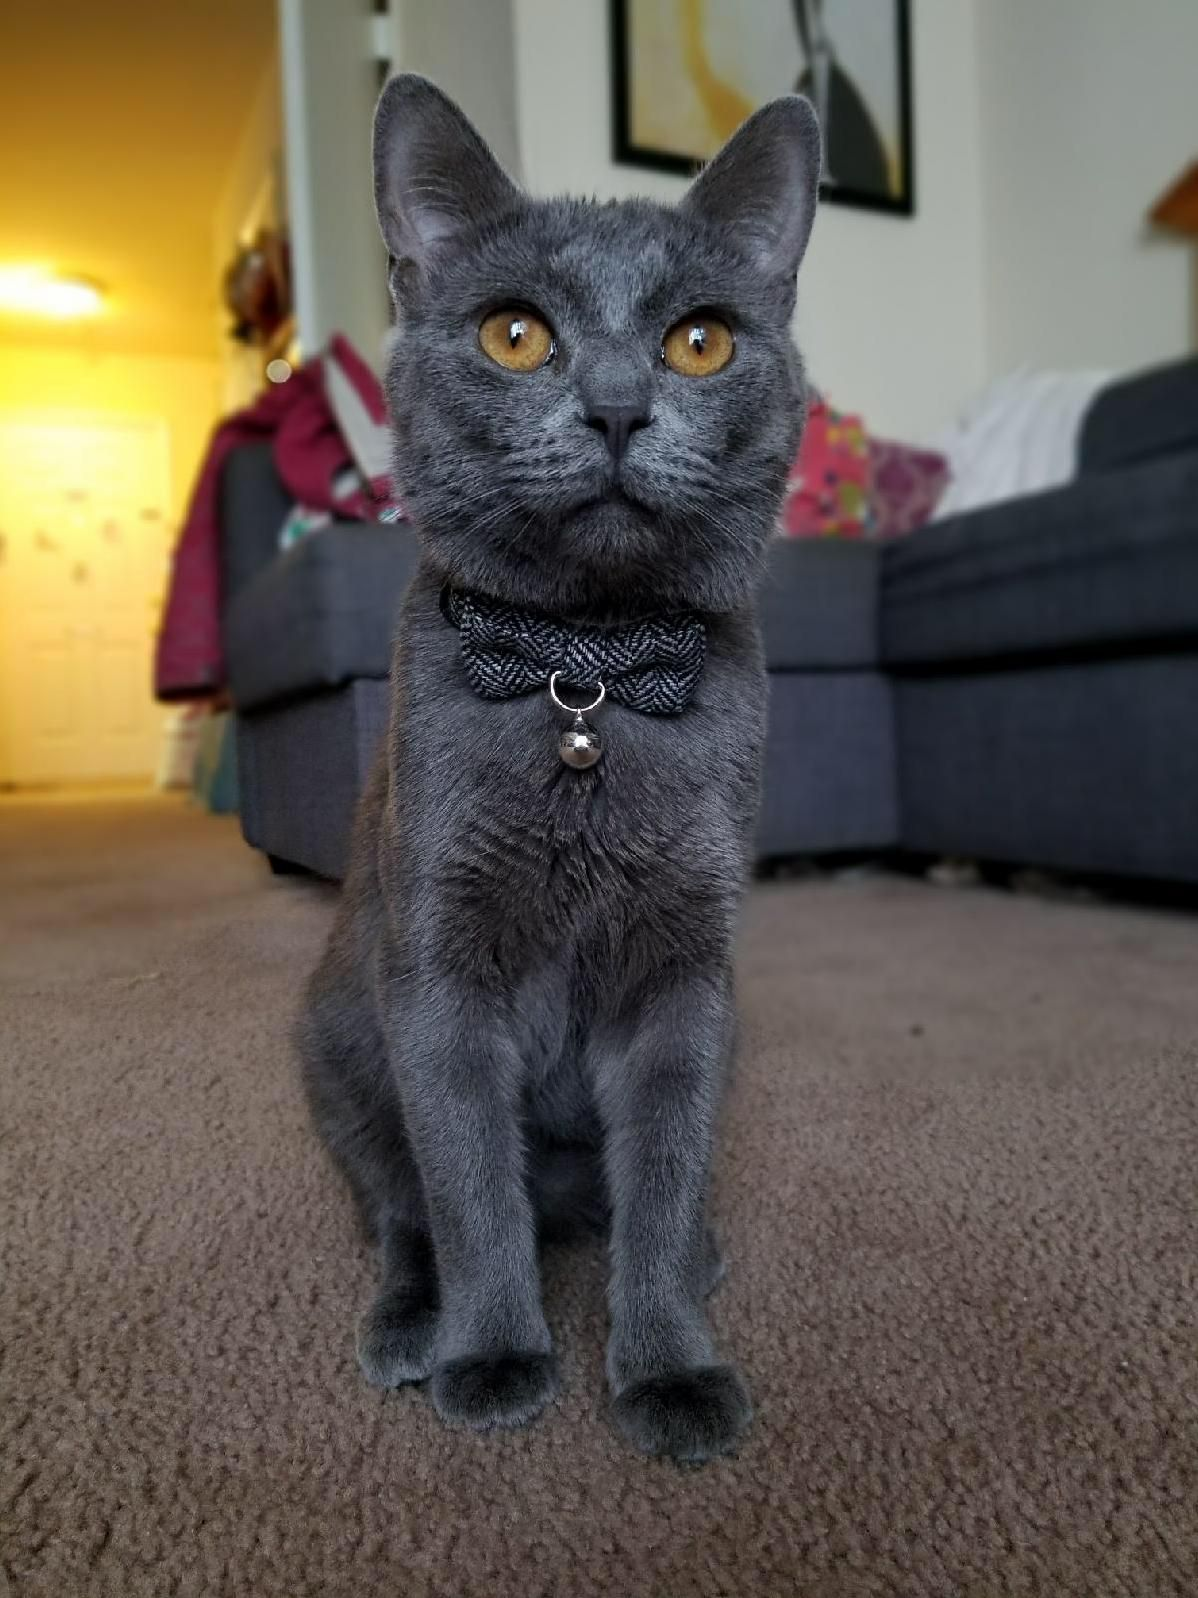 My Sisters Cat Is A Handsome Dude With Images Cute Cats And Kittens Cute Cats Kittens Cutest